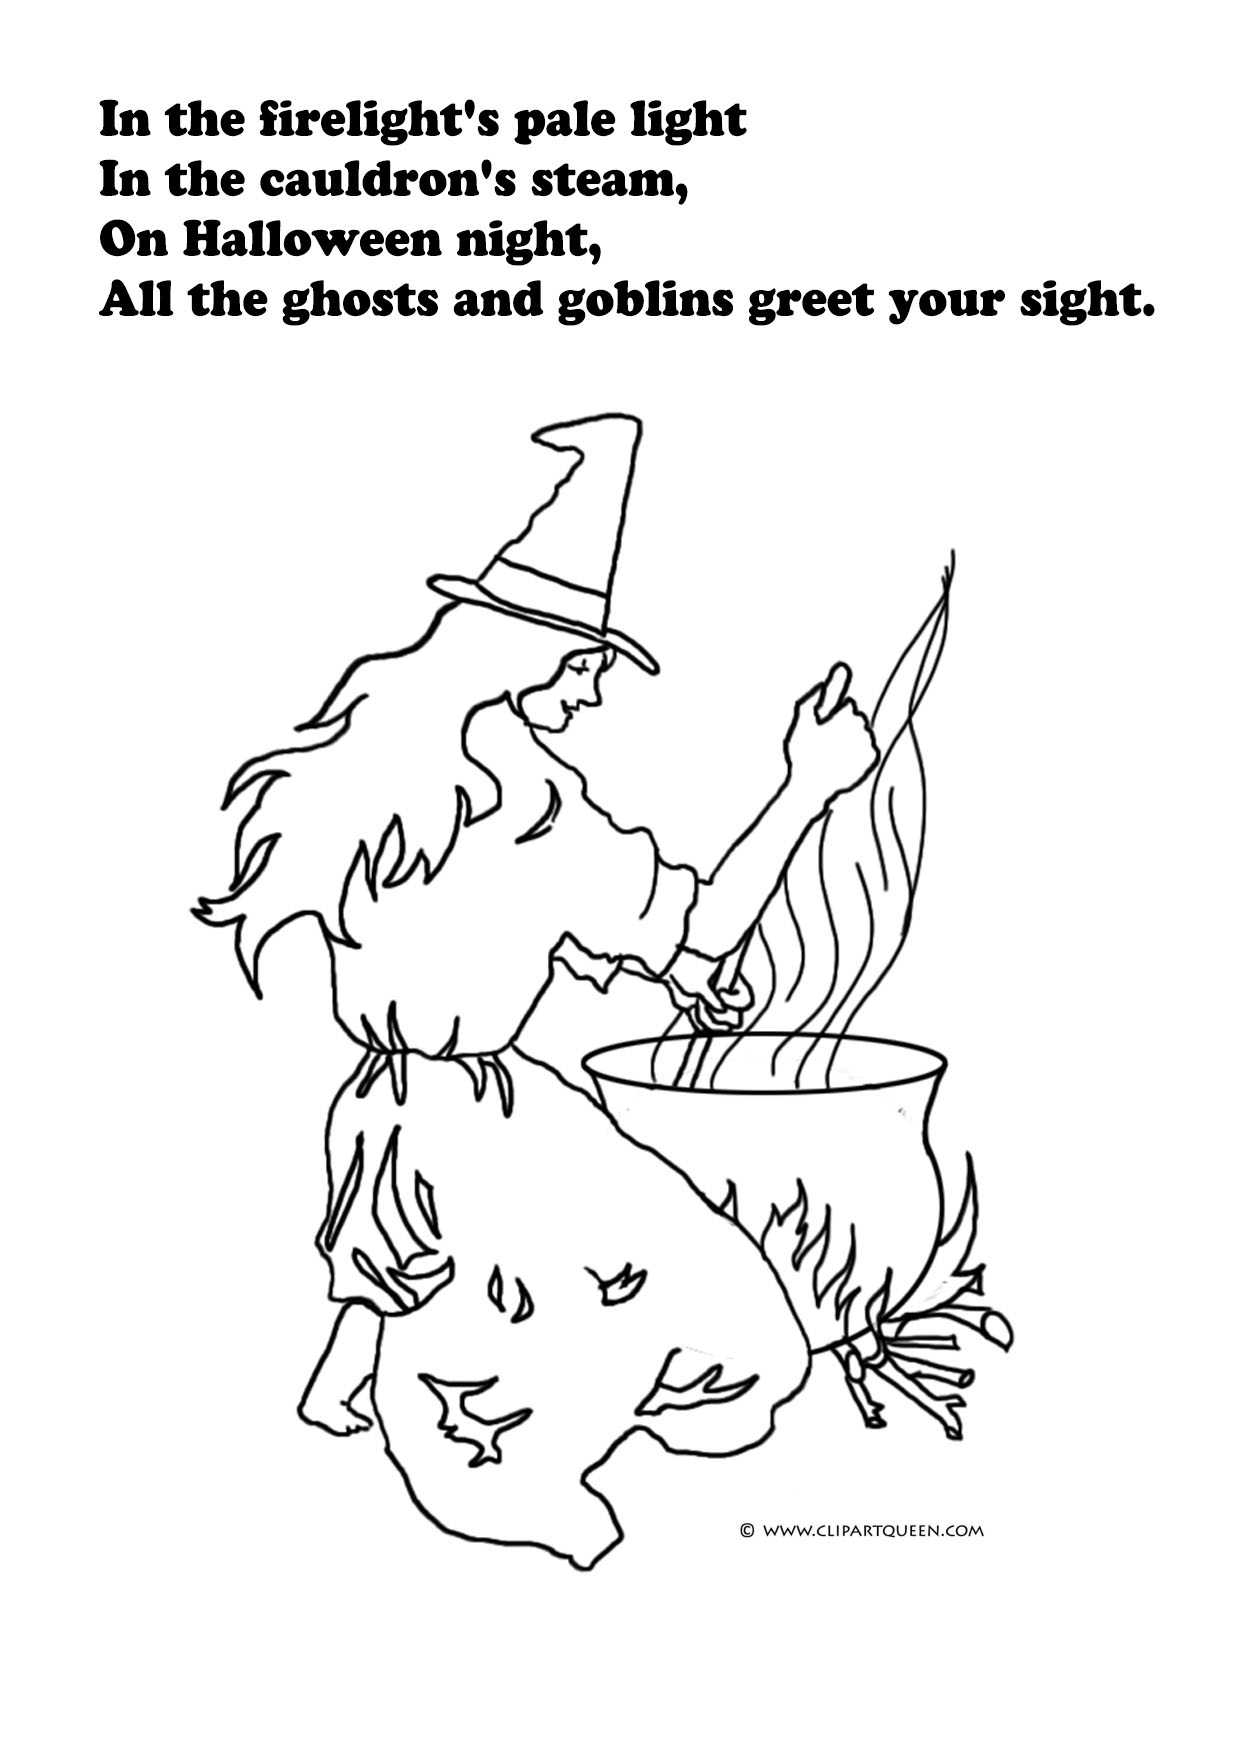 Halloween coloring sheet with witch and cauldron